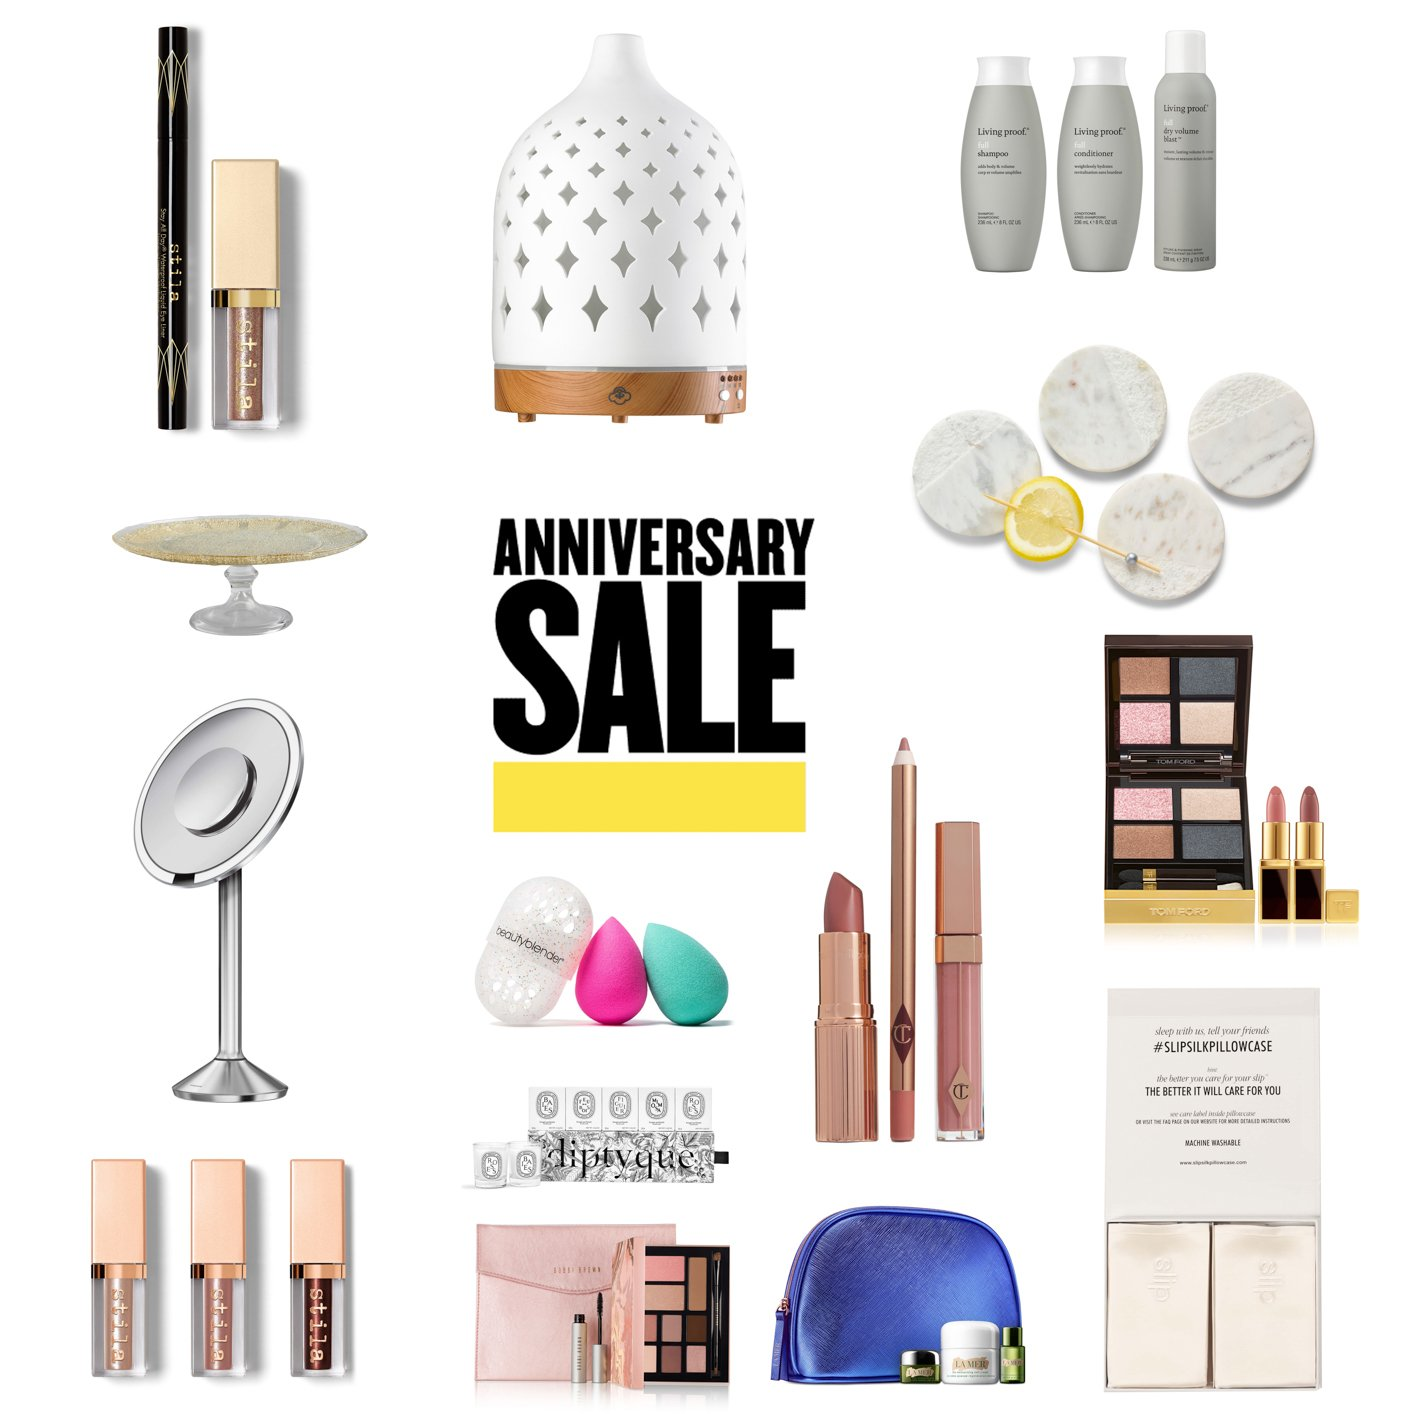 nordstrom anniversary sale beauty exclusives top picks